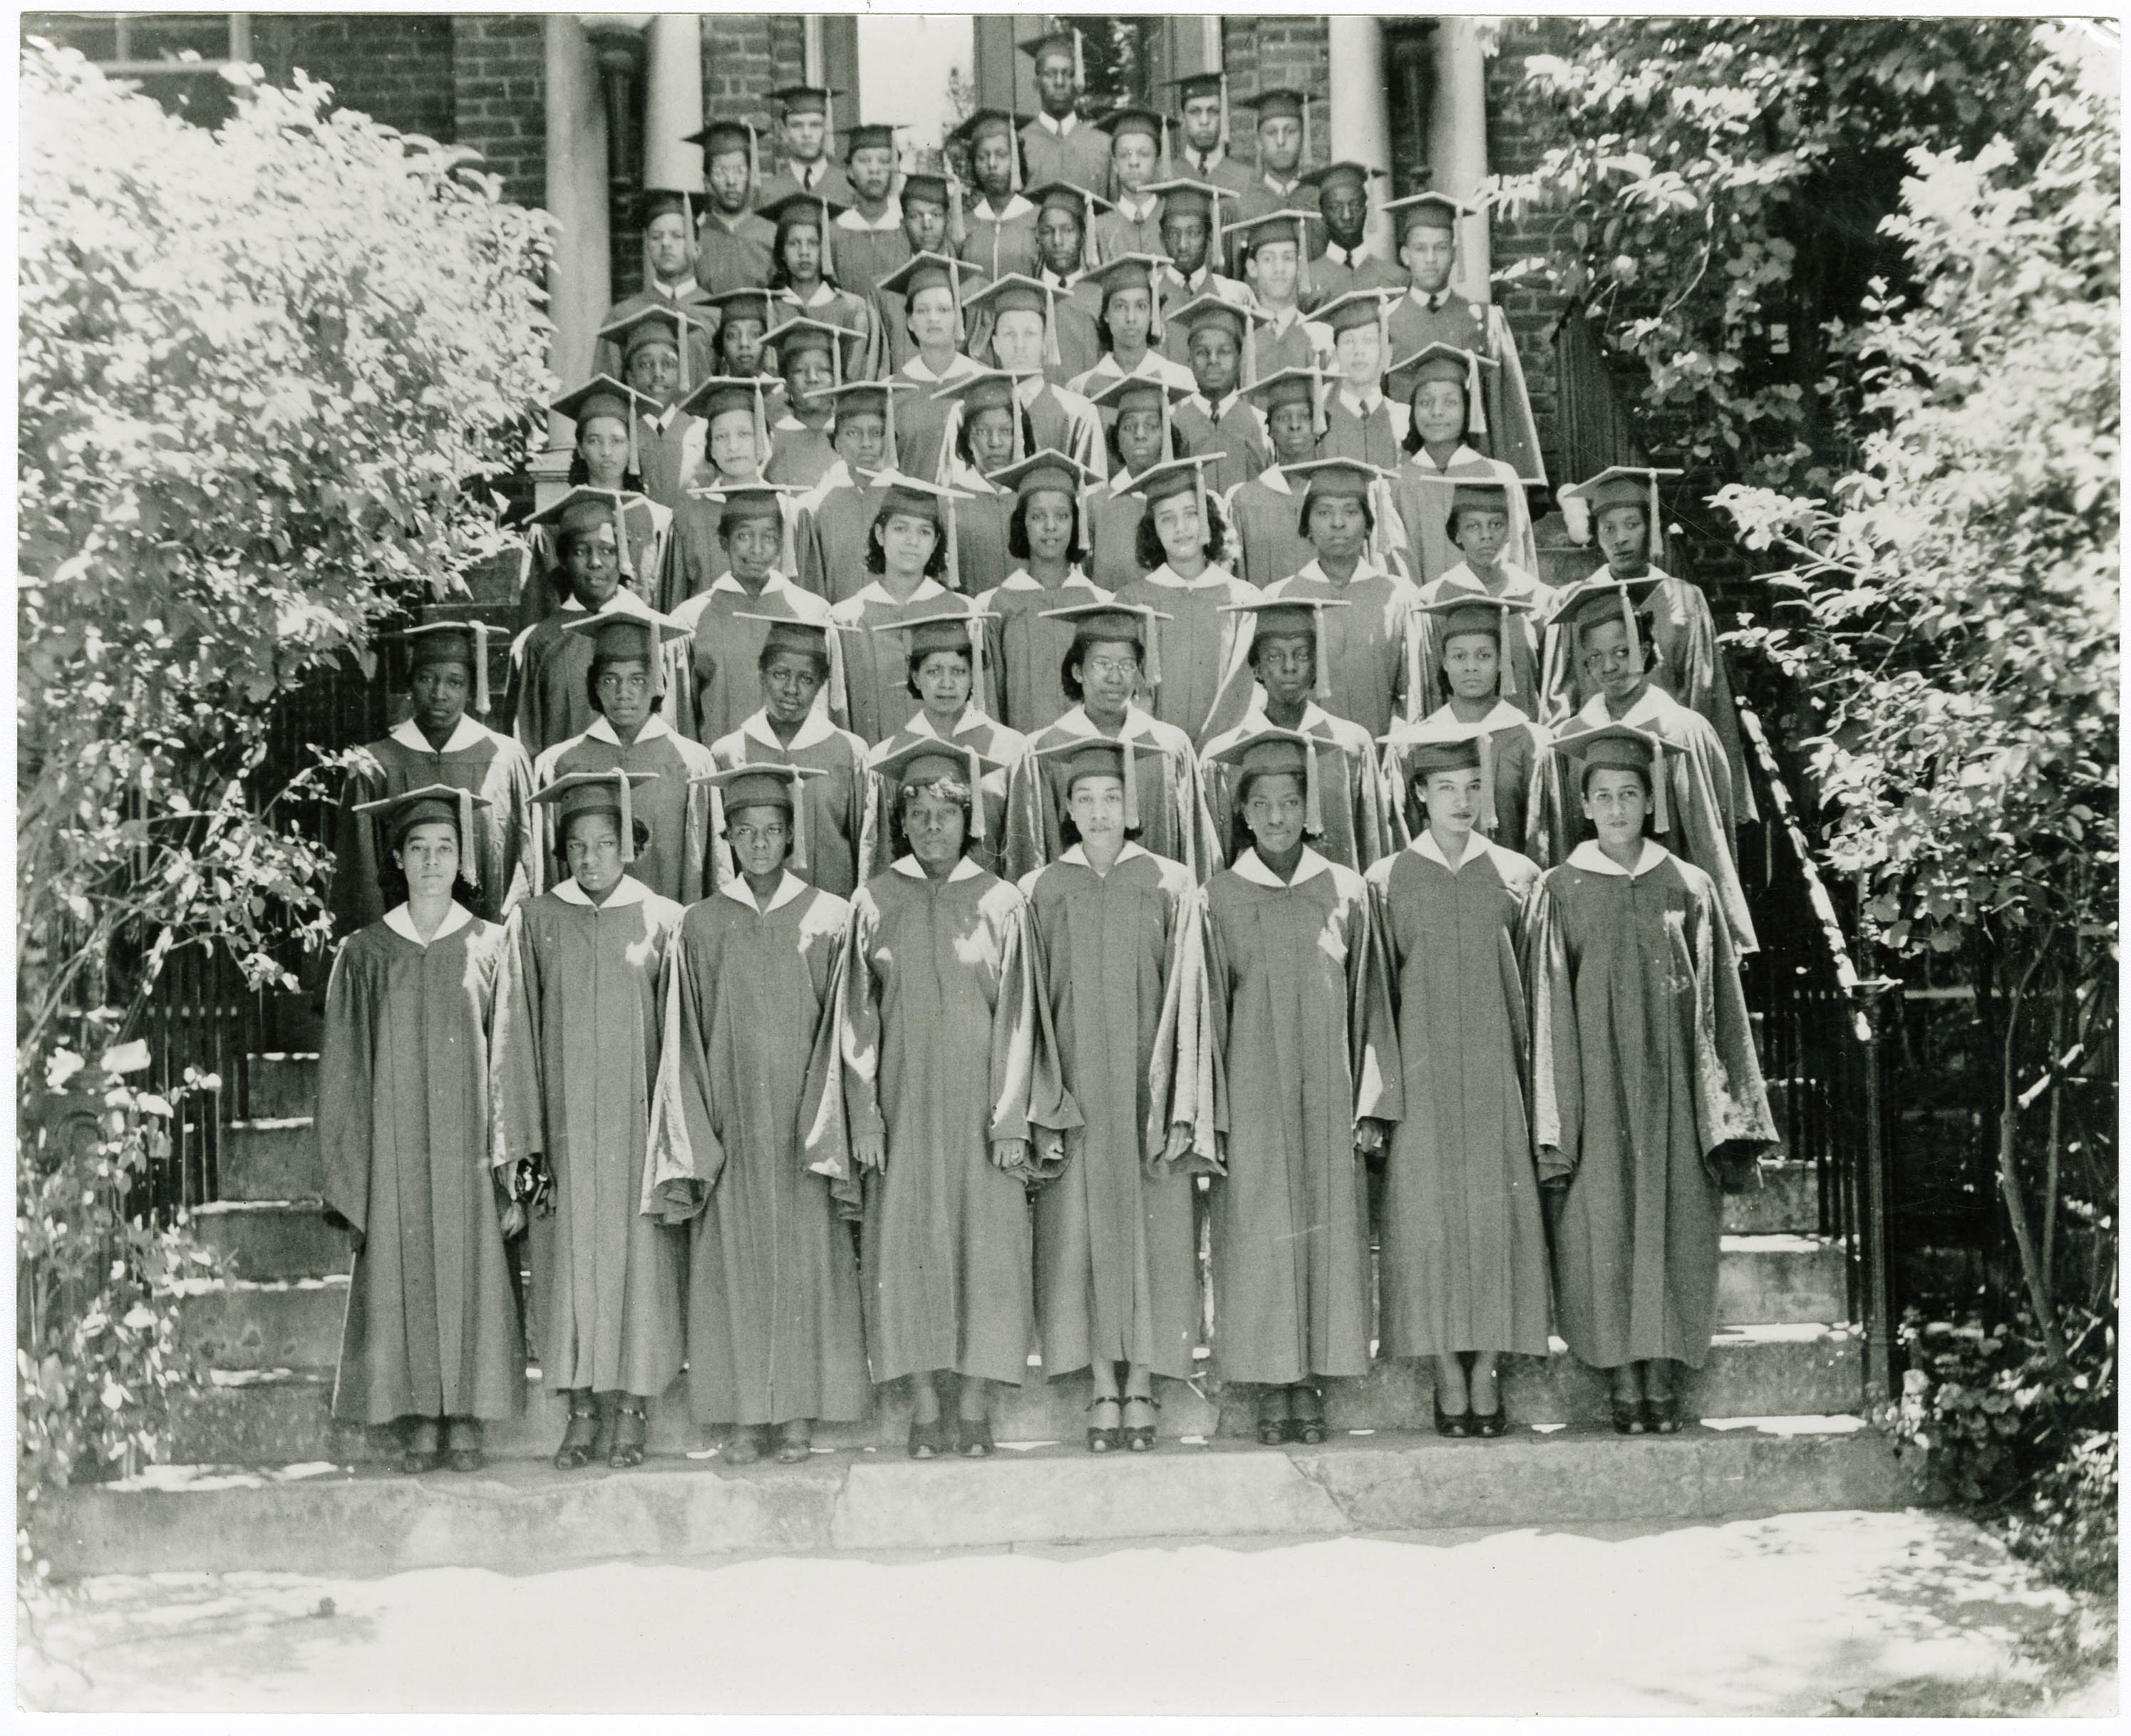 Avery Class of 1940 Graduation Picture